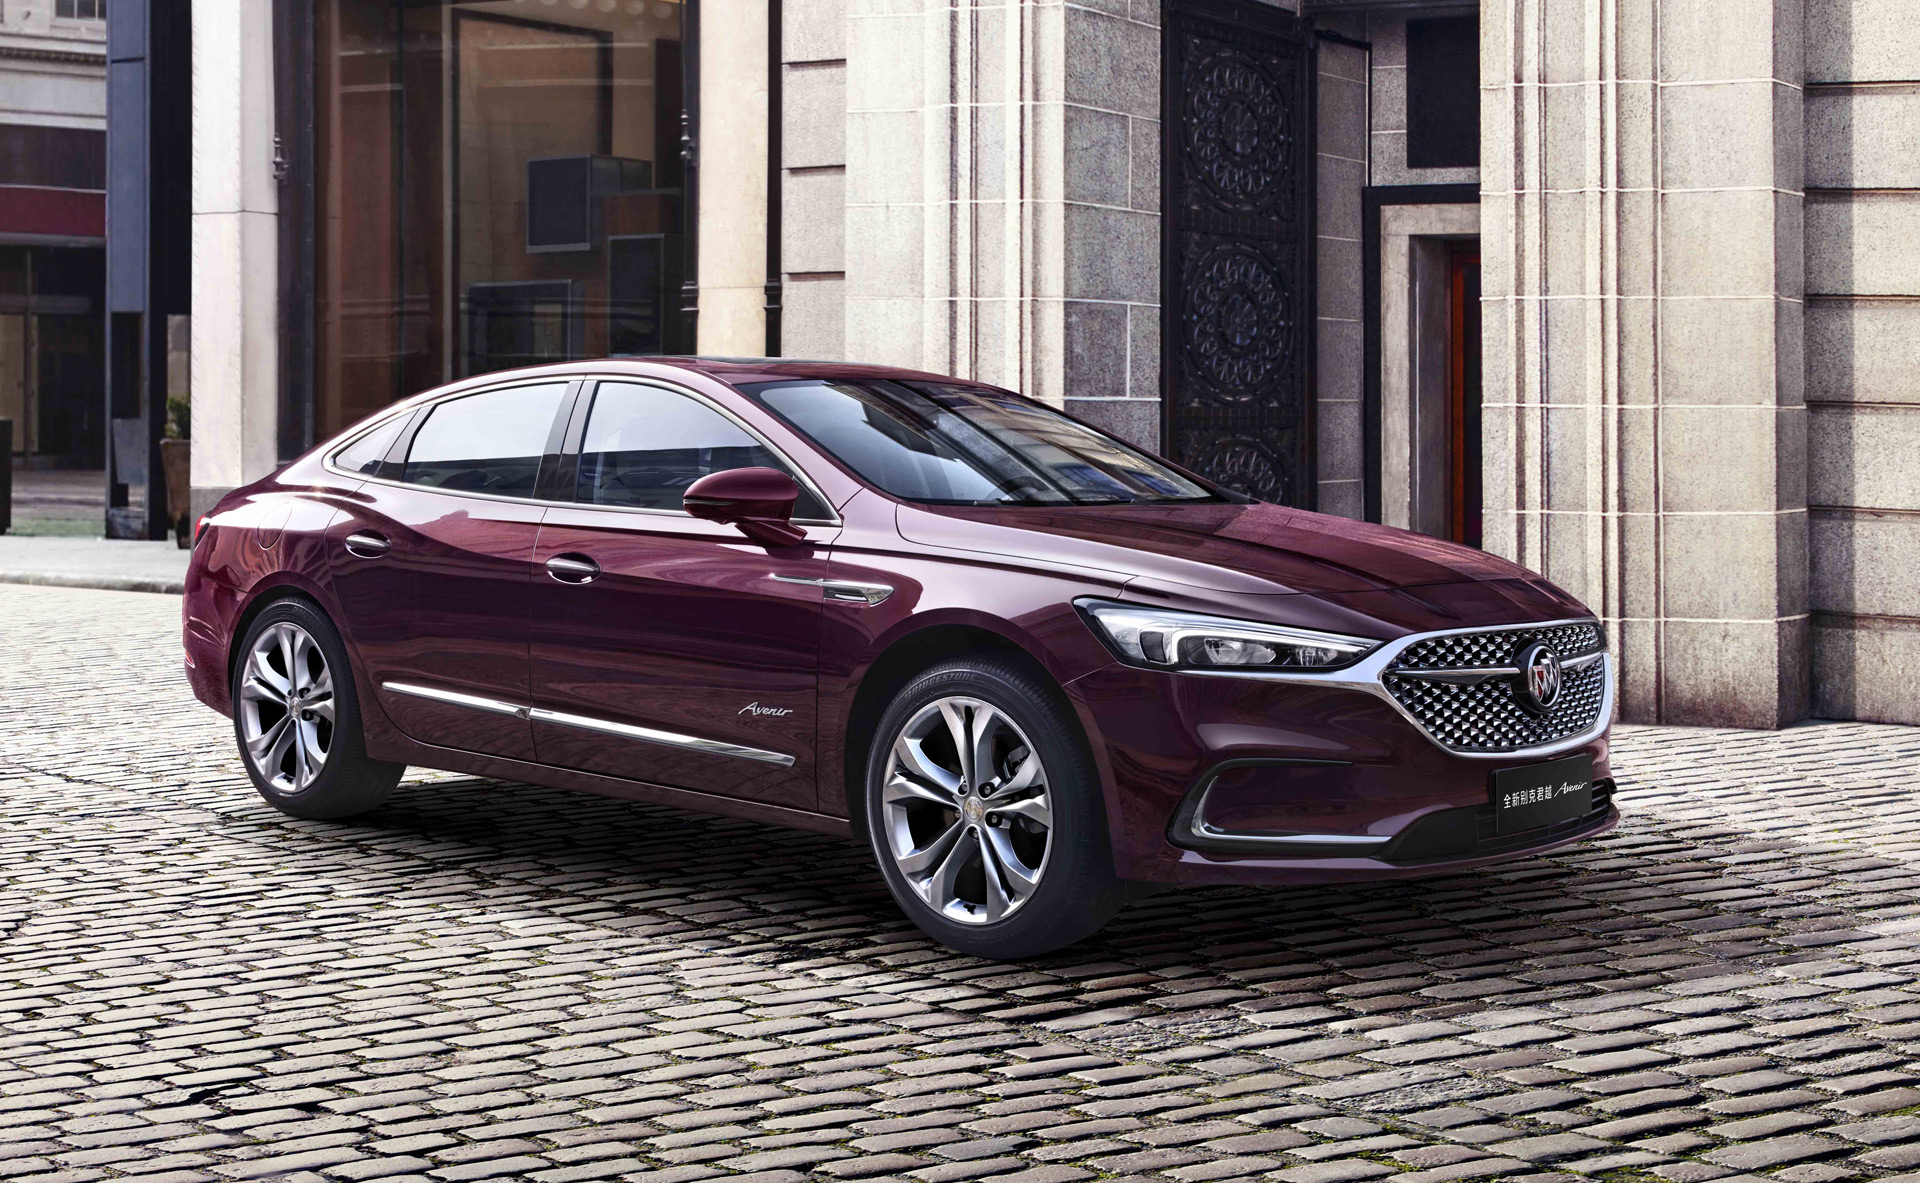 2020 Buick Lacrosse Made Handsome Just As It's Dropped In Us Show Me The New 2021 Buick Lacrosse